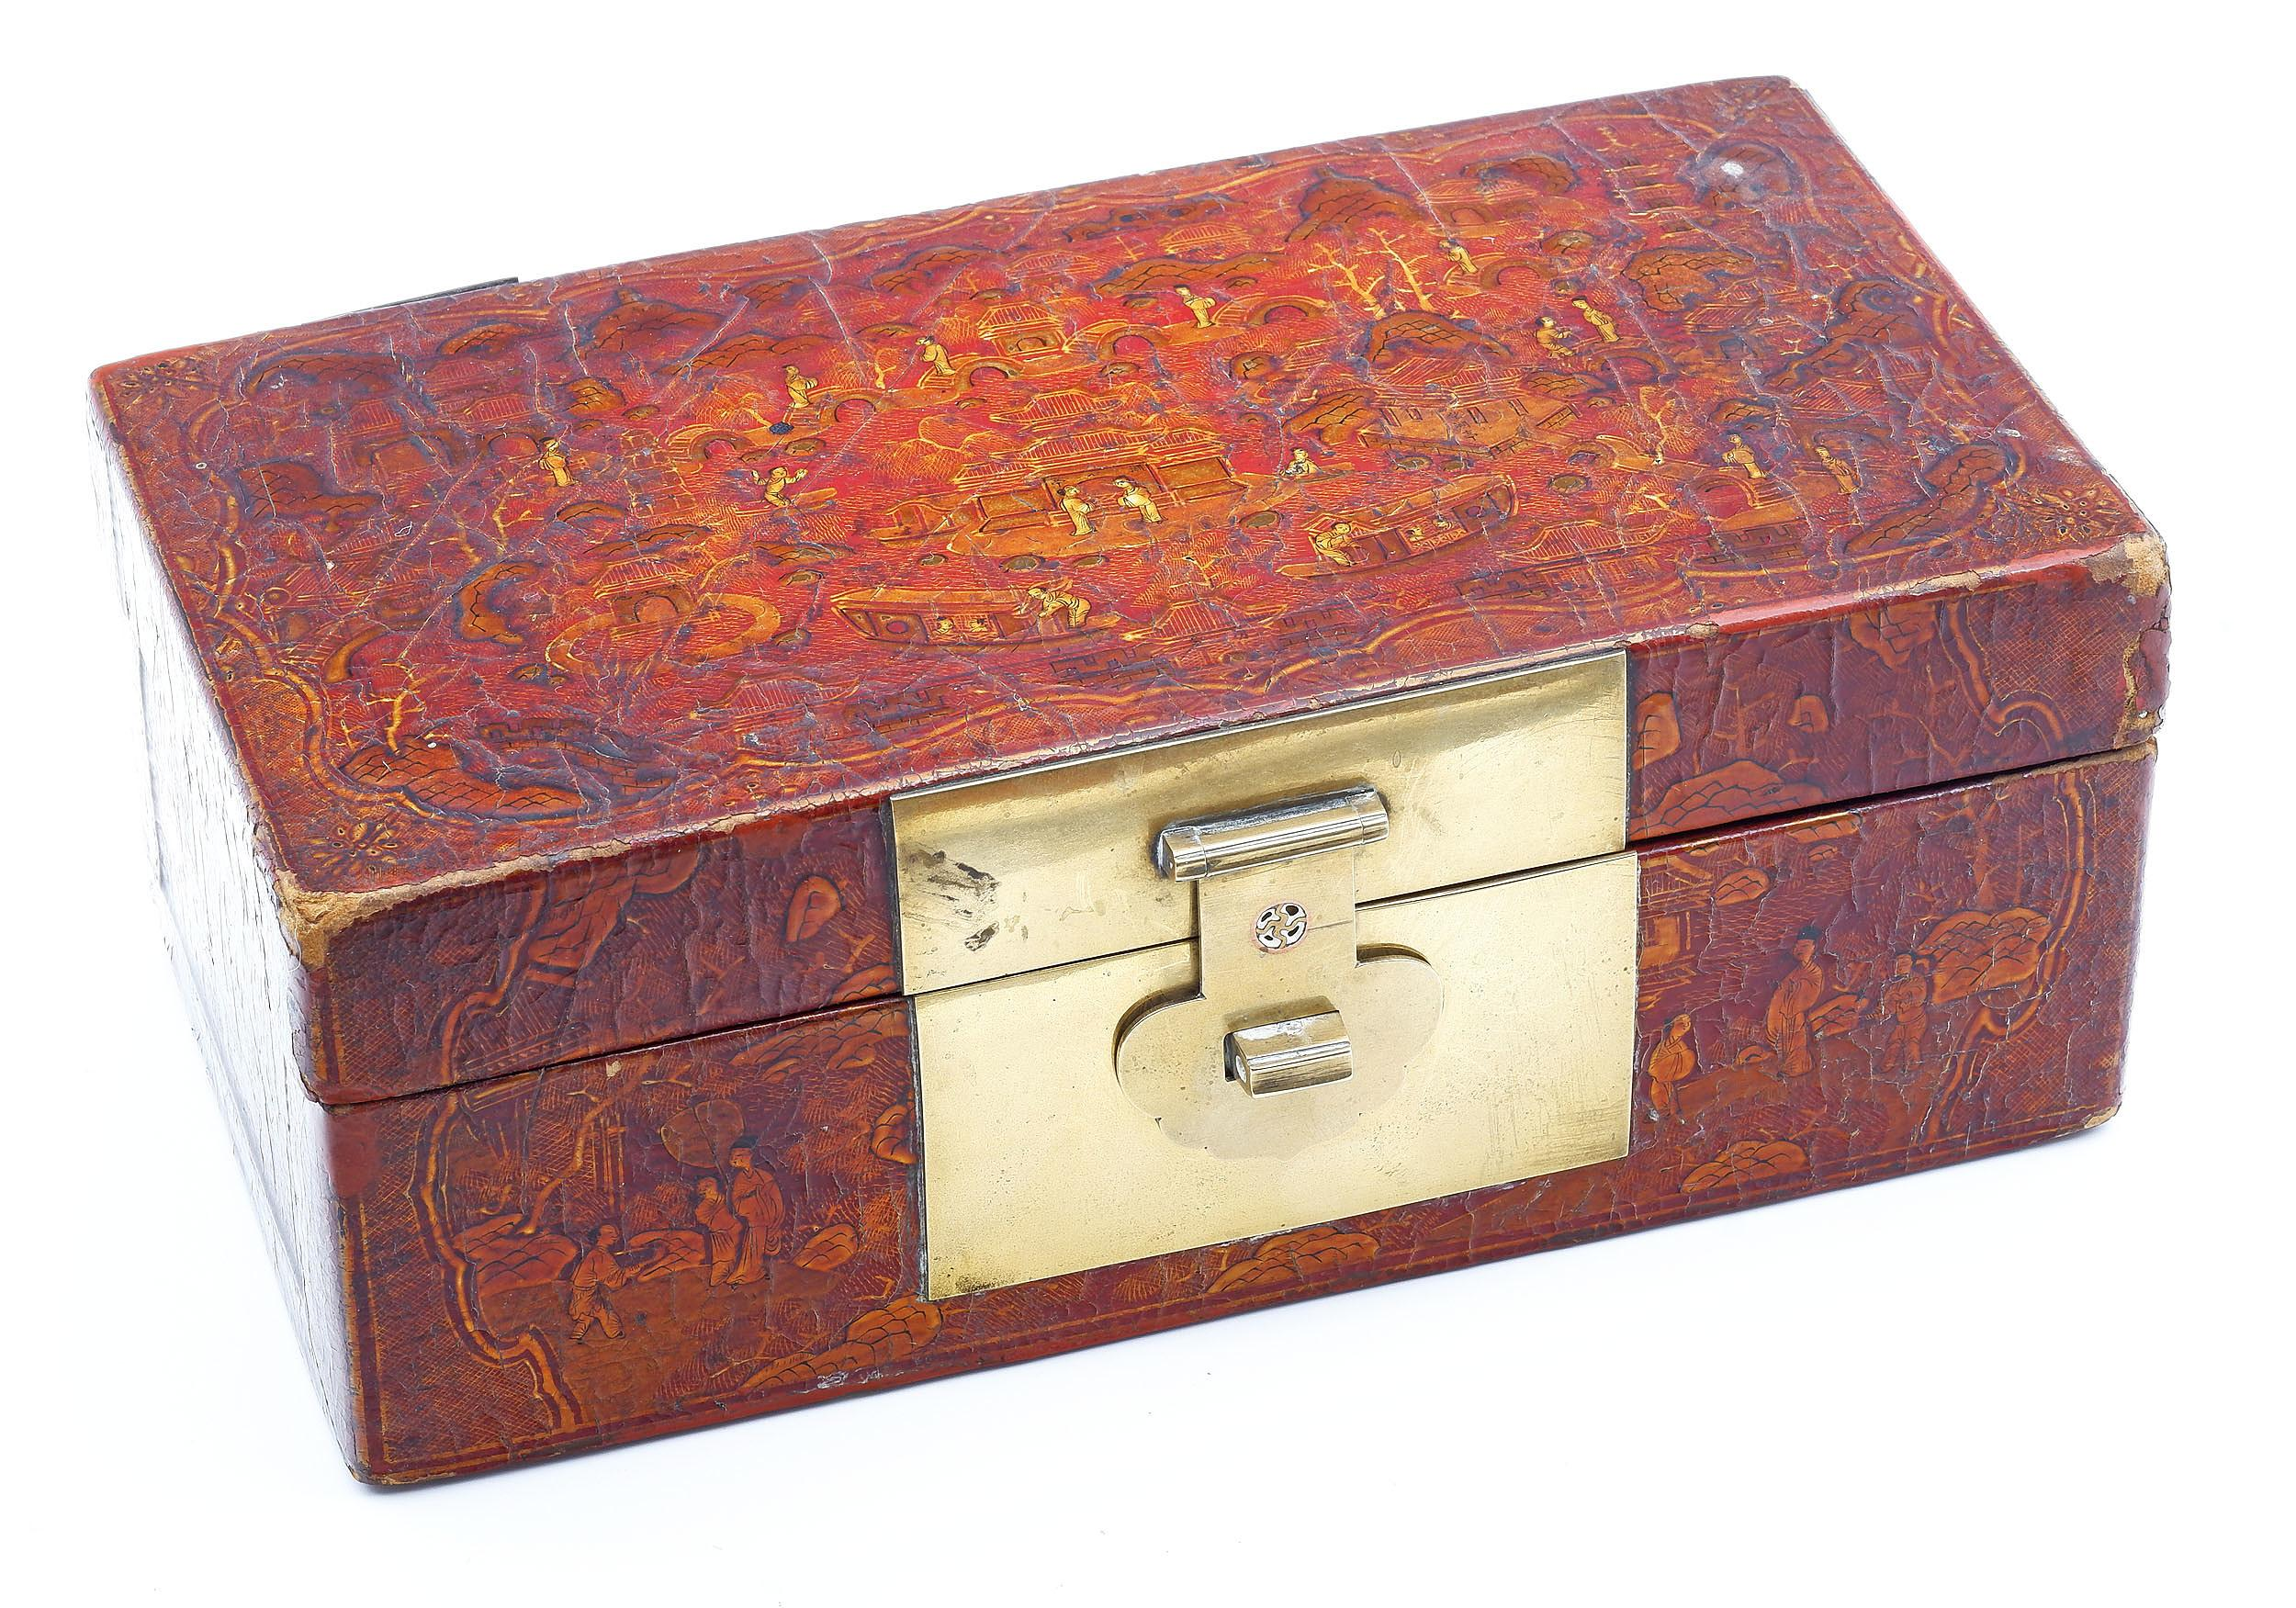 'Chinese Export Lacquer Box with Copper Inlaid Brass Latch, 19th Century'